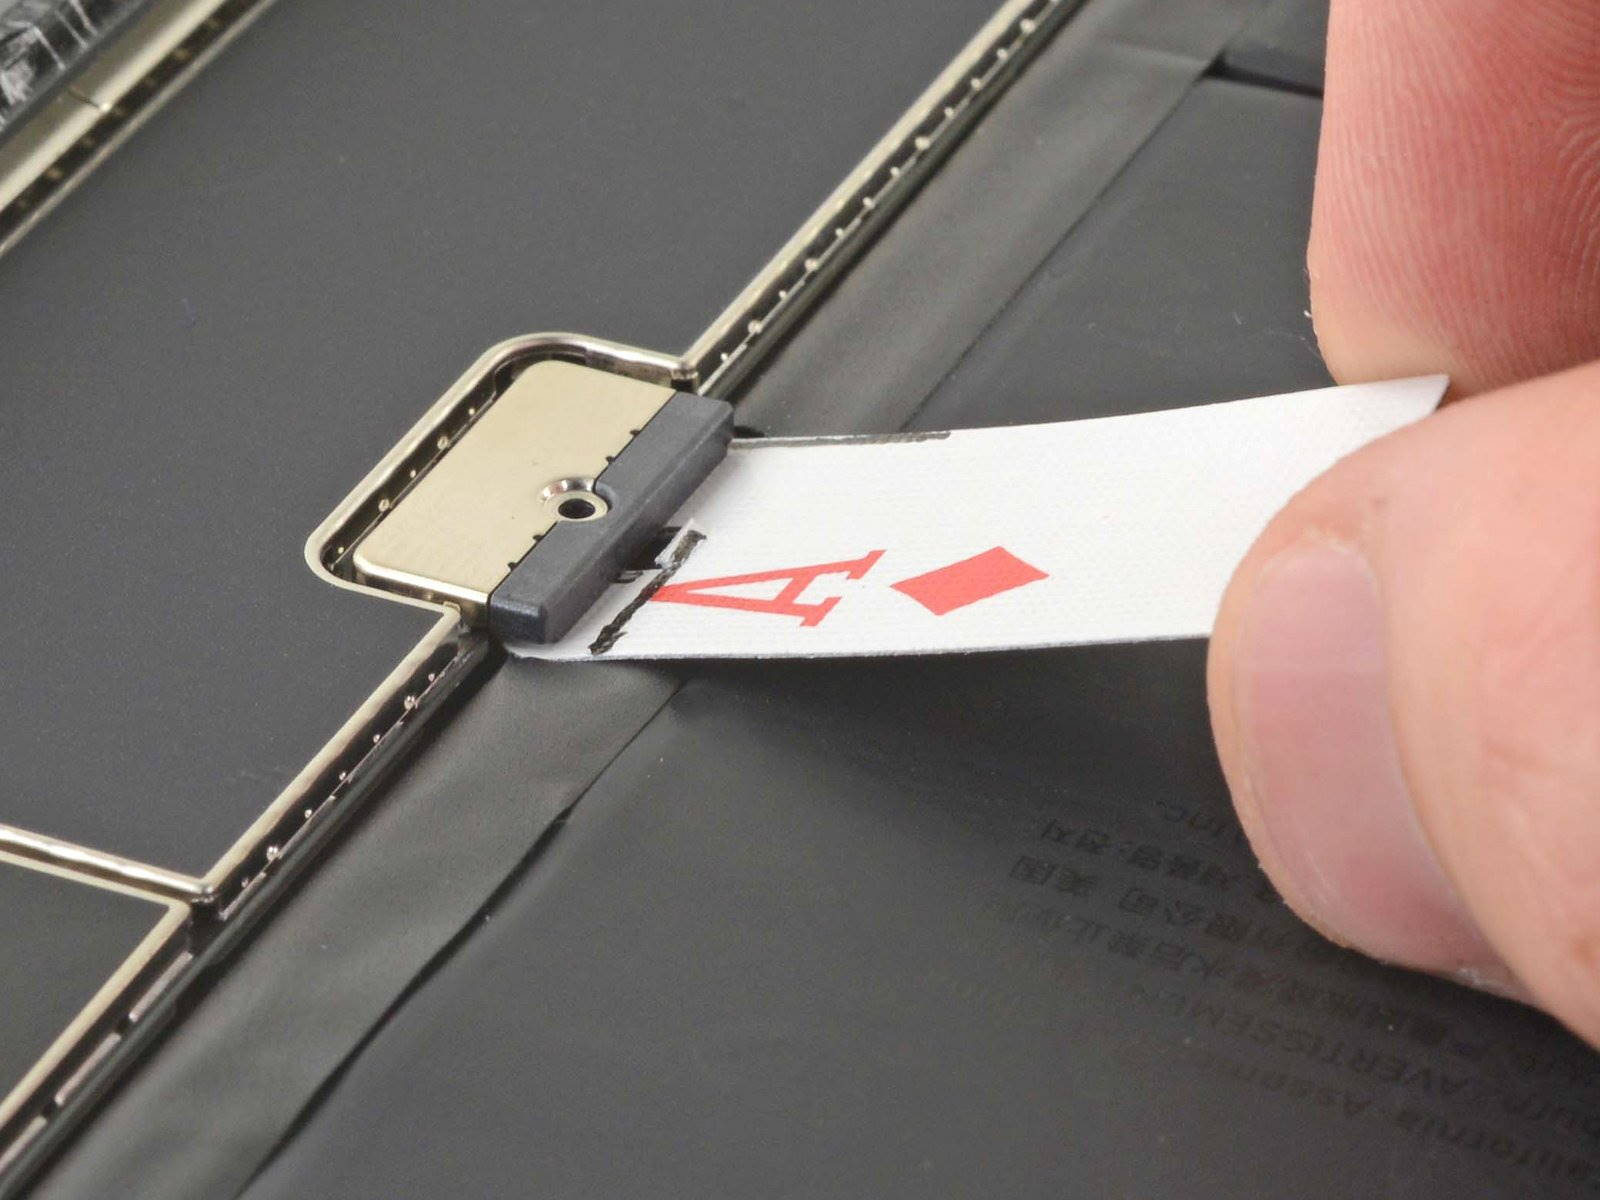 Sliding playing card cut-out under iPad battery connector